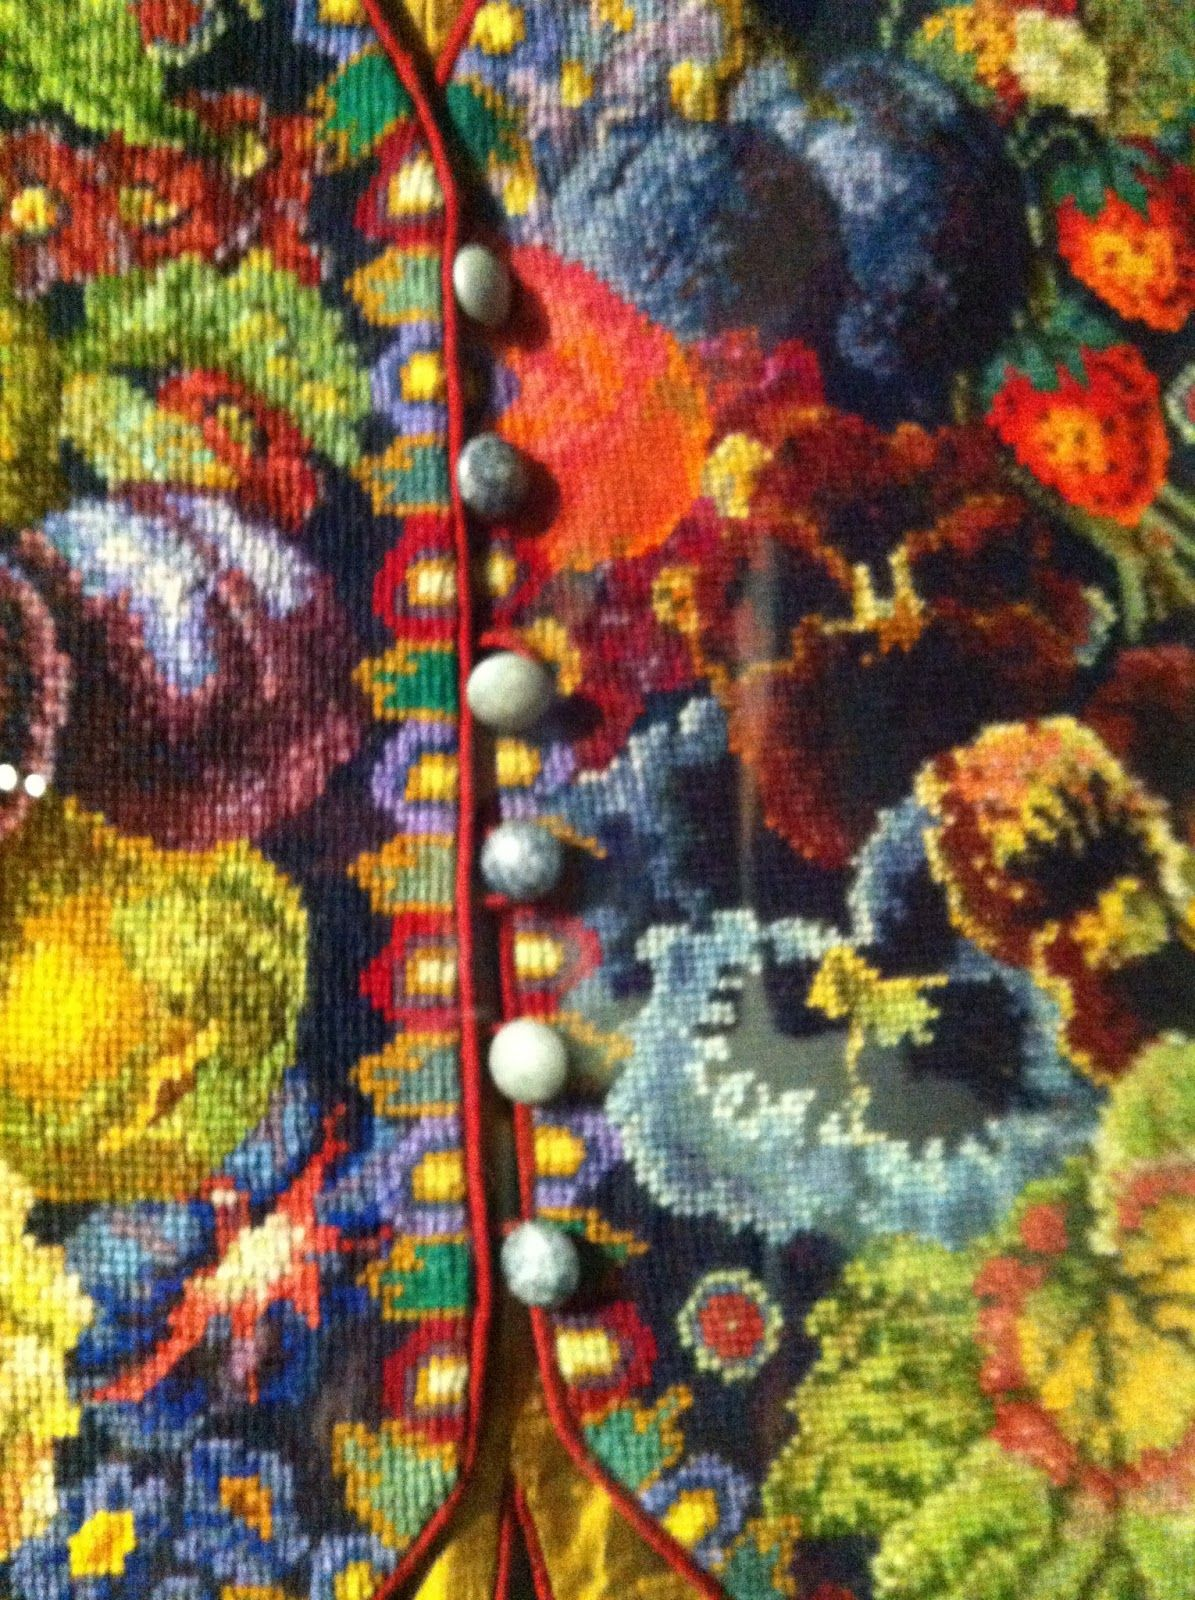 Kaffe Fassett Knitting Kits : Kaffe fassett needlepoint kits strawberries pansies and